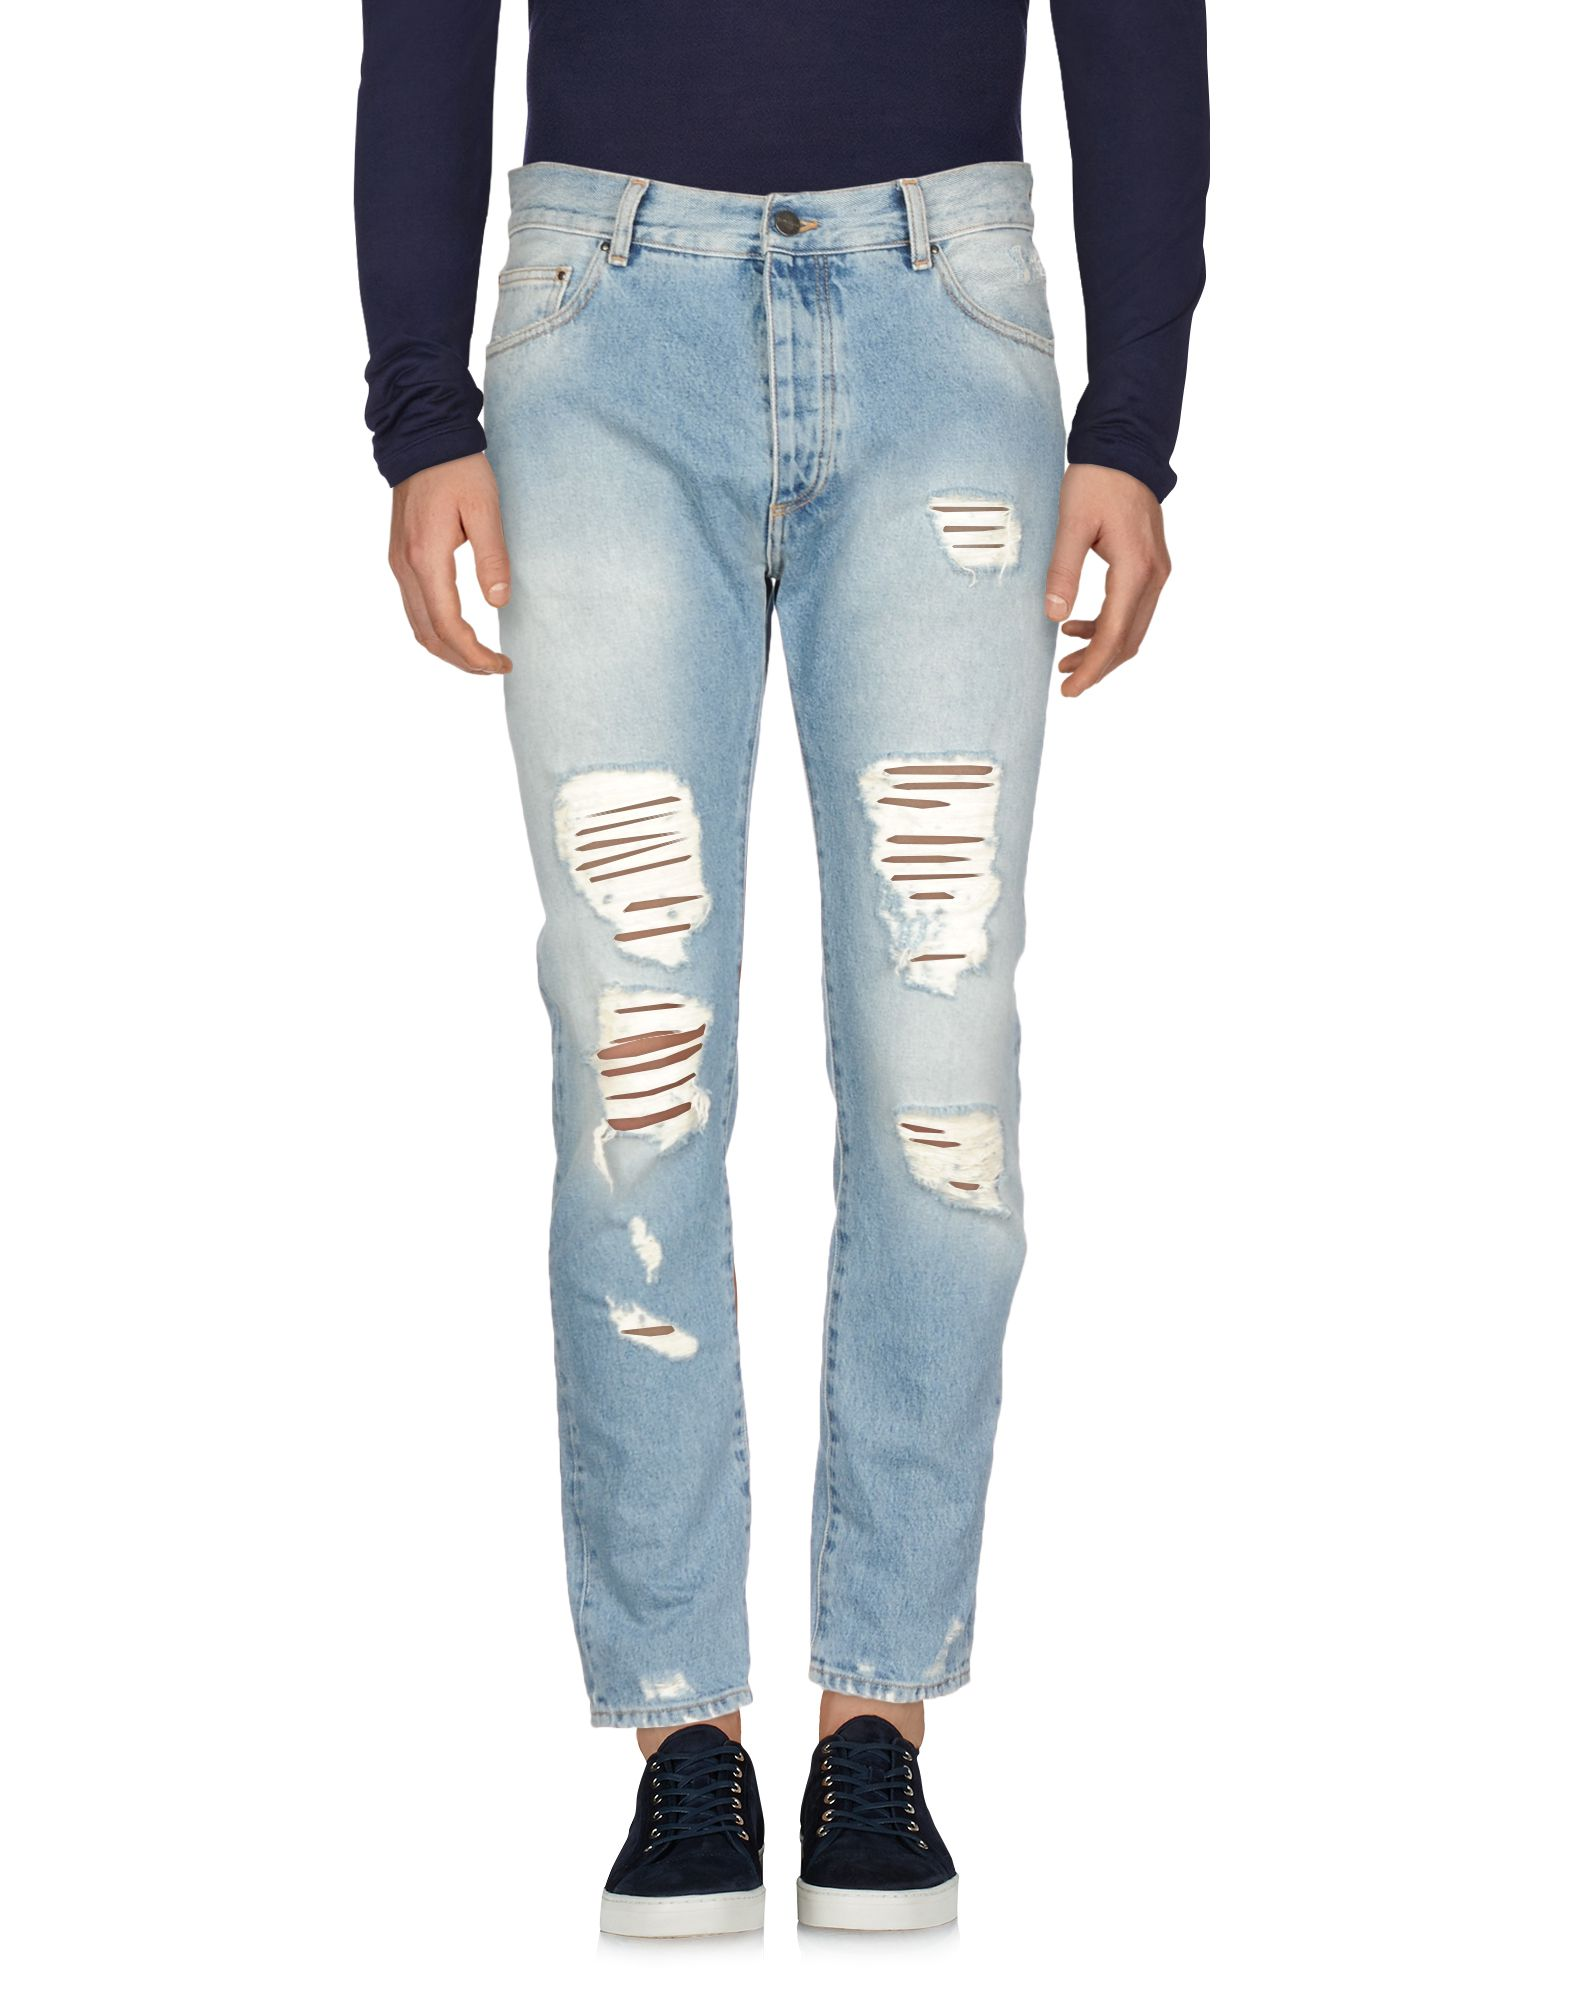 Pantaloni Jeans Palm Angels Donna - Acquista online su